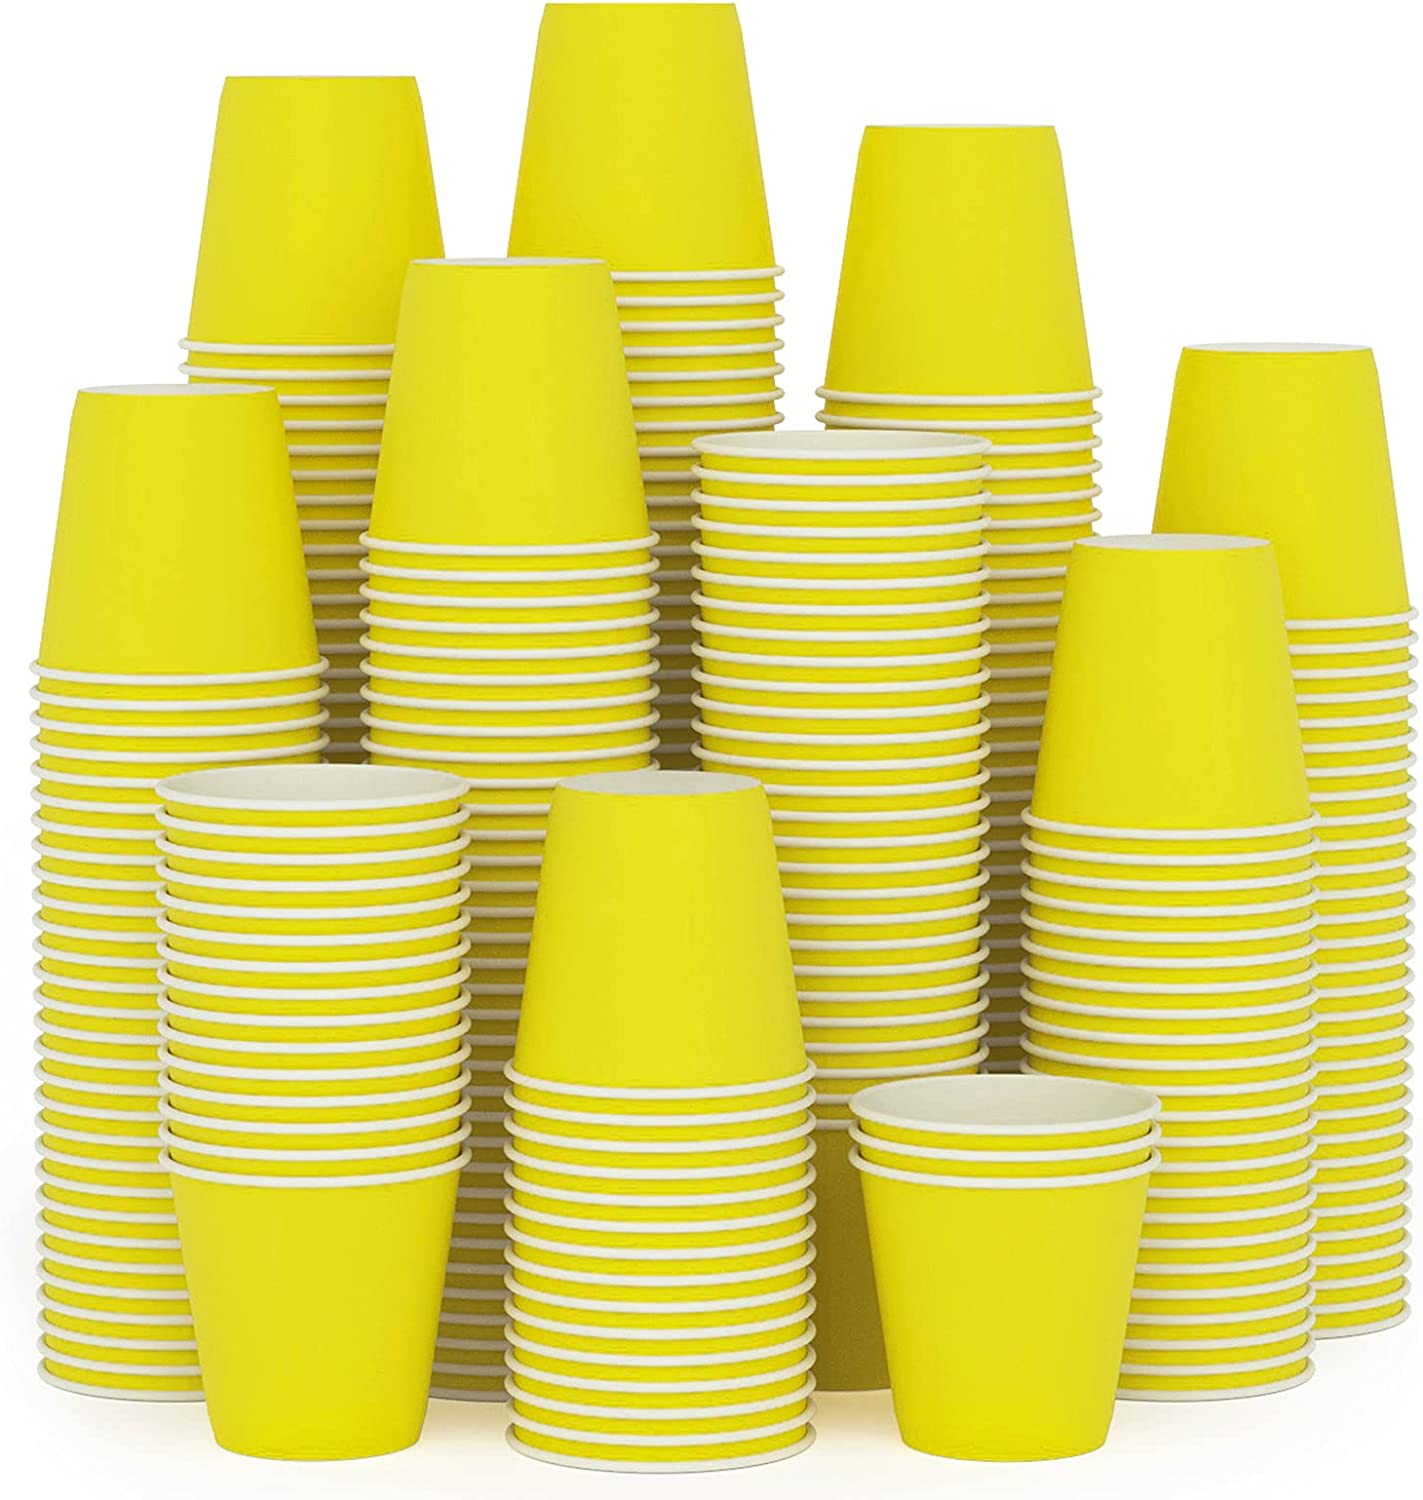 300Pack 3oz Small Paper Cups,Disposable Yellow Bathroom Cups, Mouthwash Cups,Espresso Cups, Hot/Cold Beverage Drinking Cup for Party, Picnic,Travel and Event